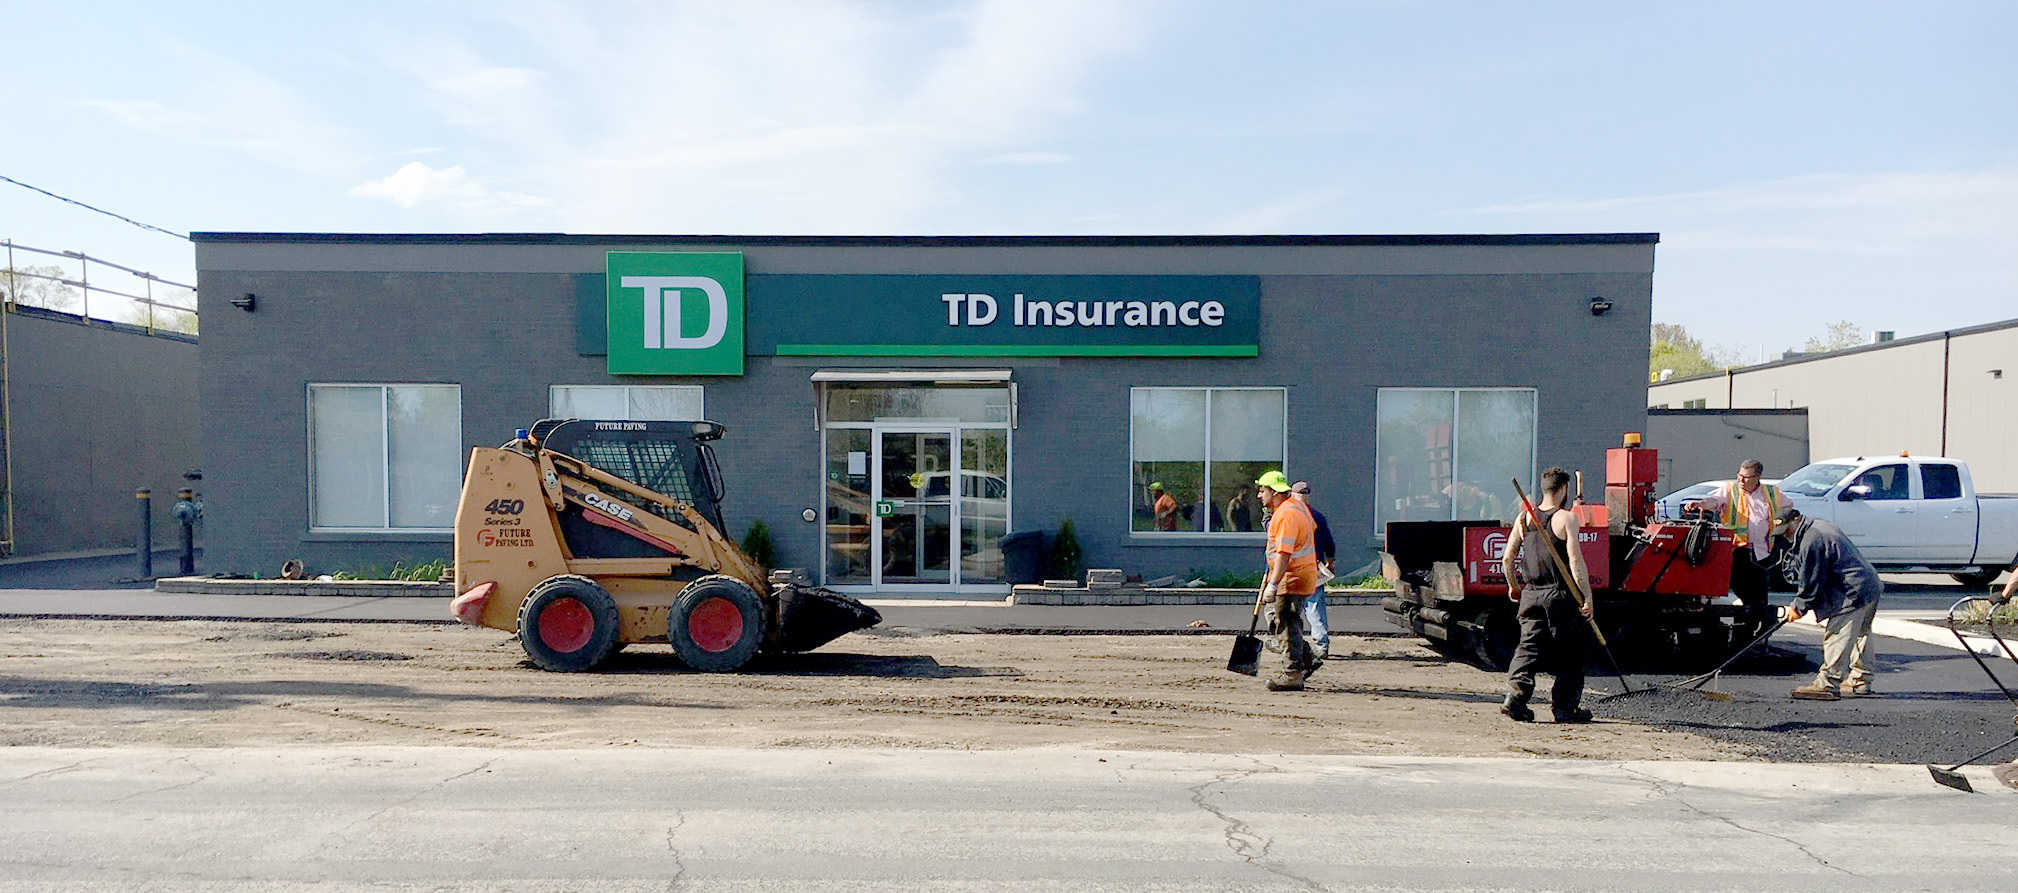 Asphalt Paving Parking lot company toronto GTA Future Paving TD insurance